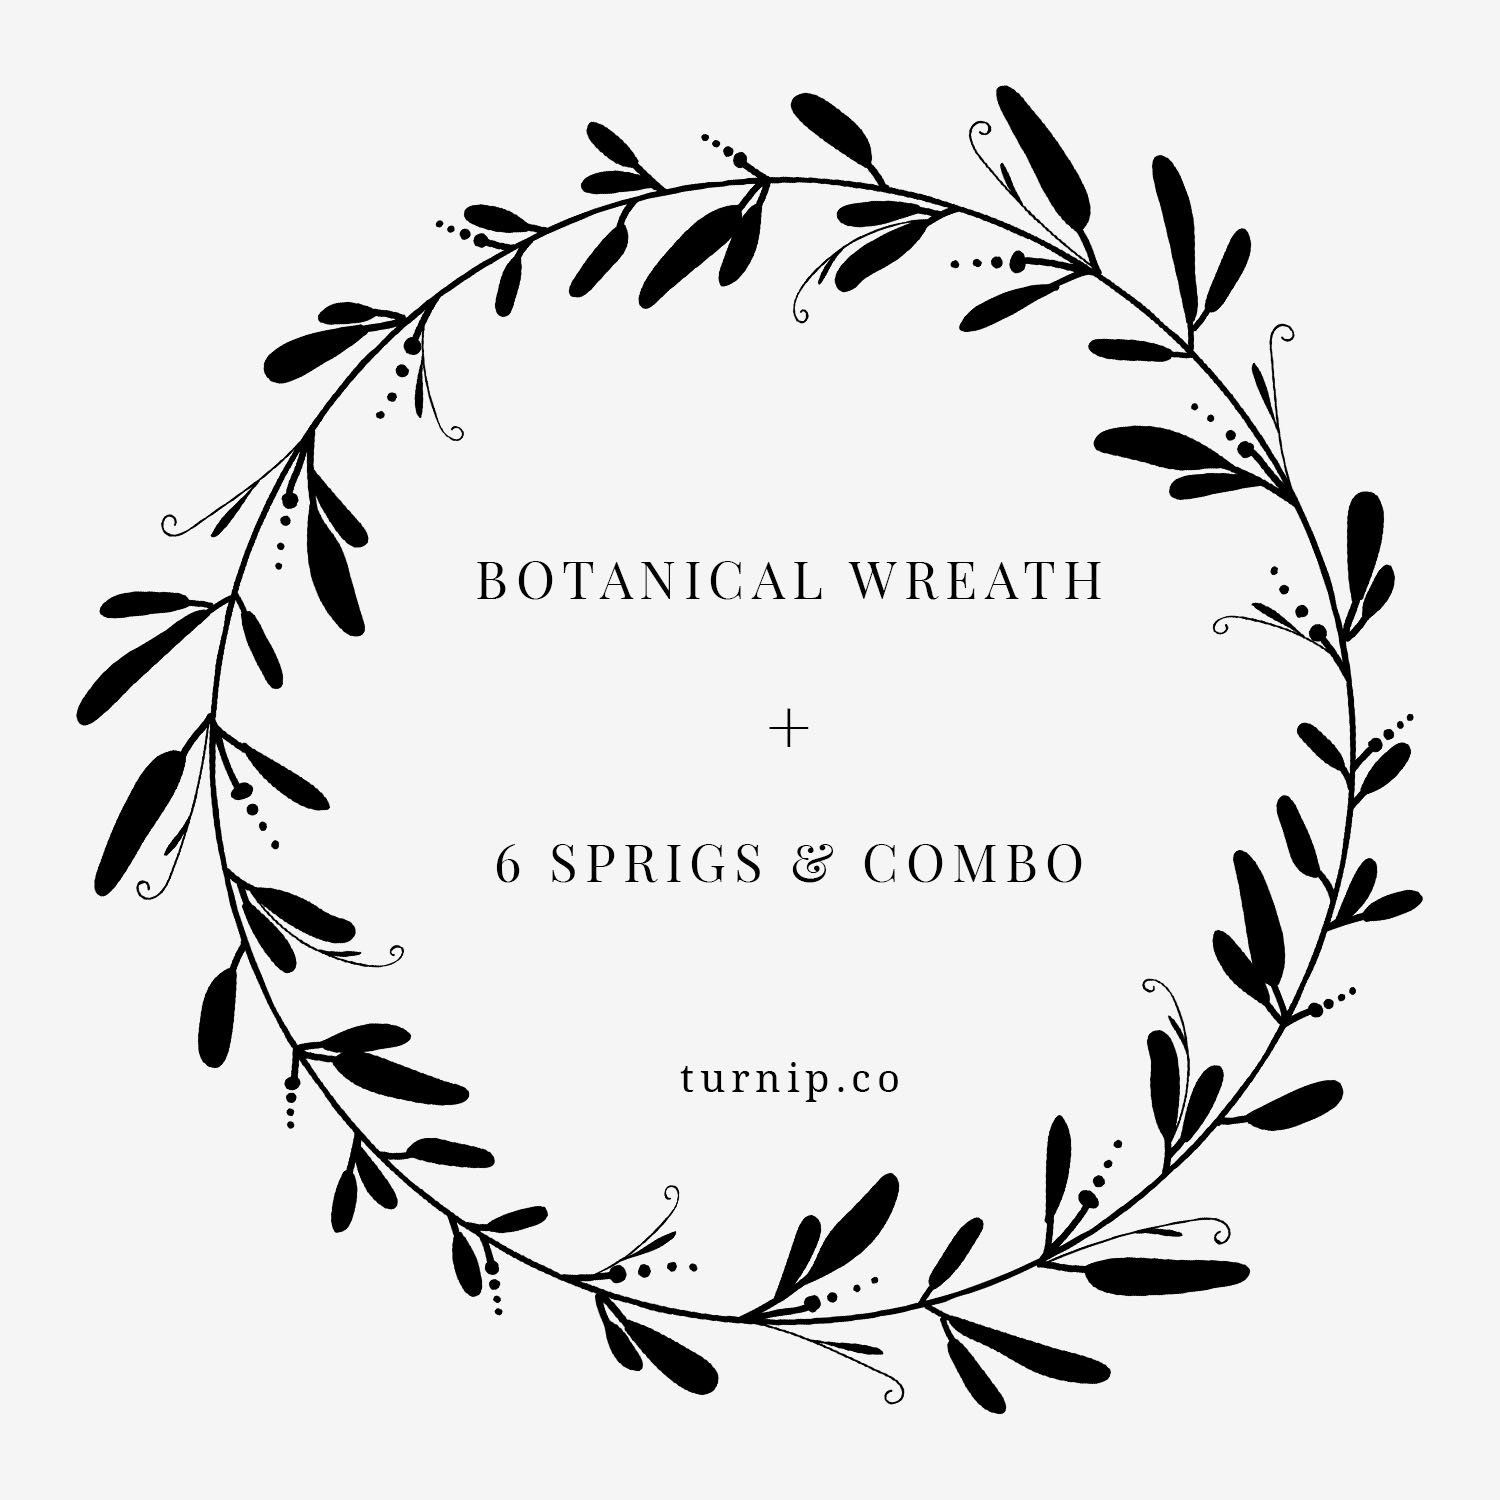 Black And White Wreath Clipart Botanical Leaf Wreath Png Svg Pdf Minimalist Floral Wreath Clip Art Commercial Use Elegant Images Vector In 2021 Wreath Clip Art Wreath Clip White Wreath